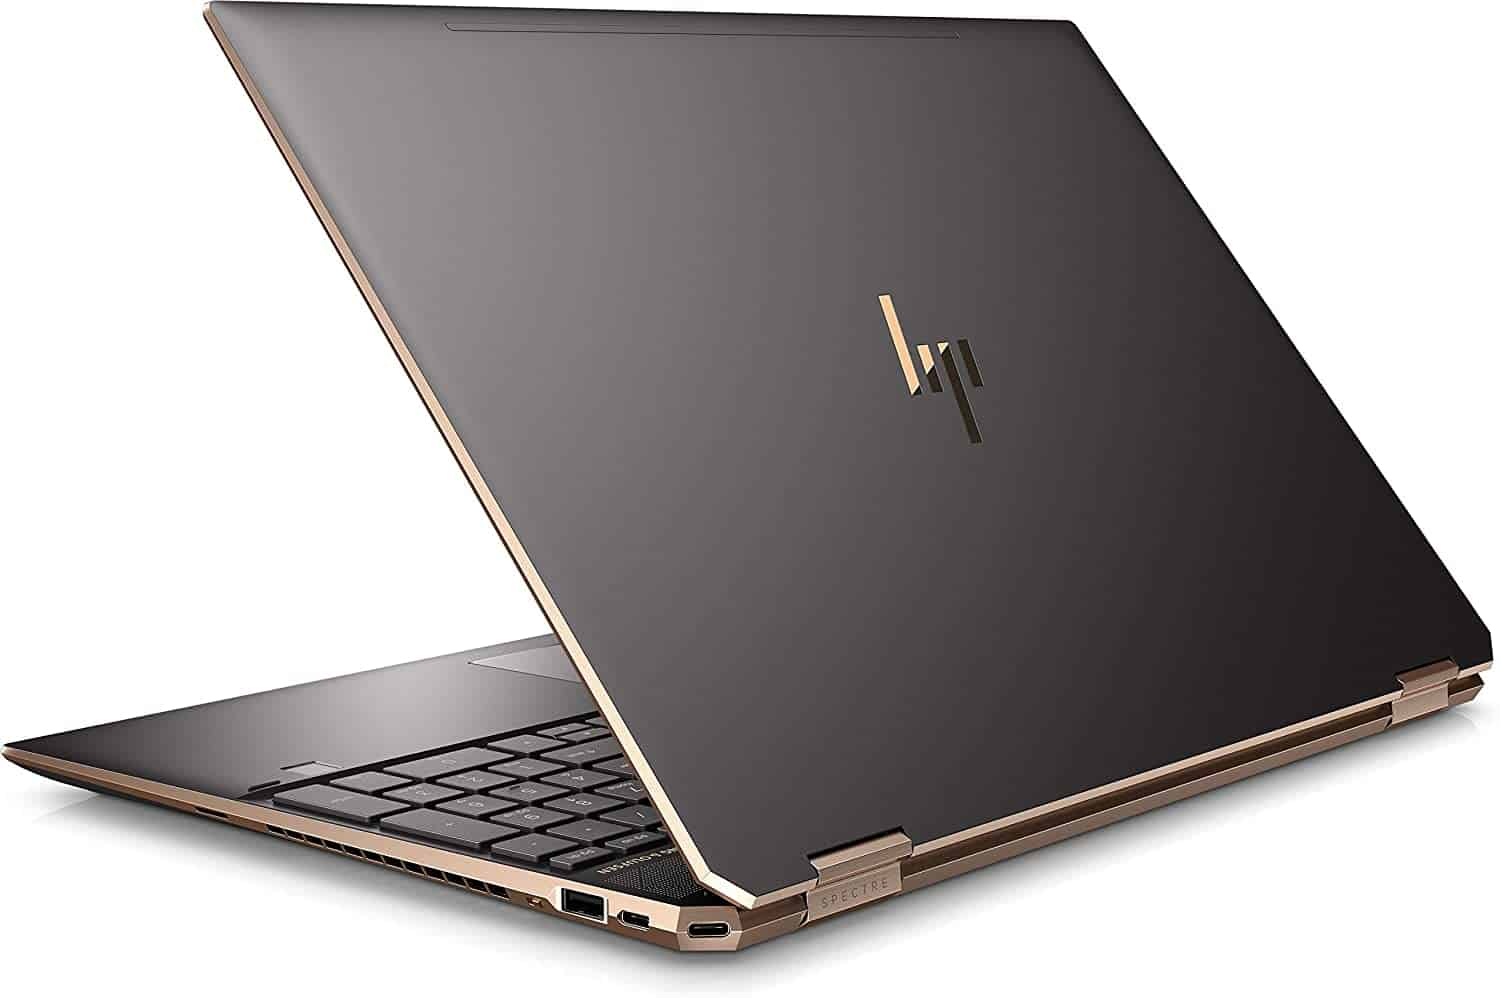 Image of HP Spectre x360 ecommended as best laptop for medical school